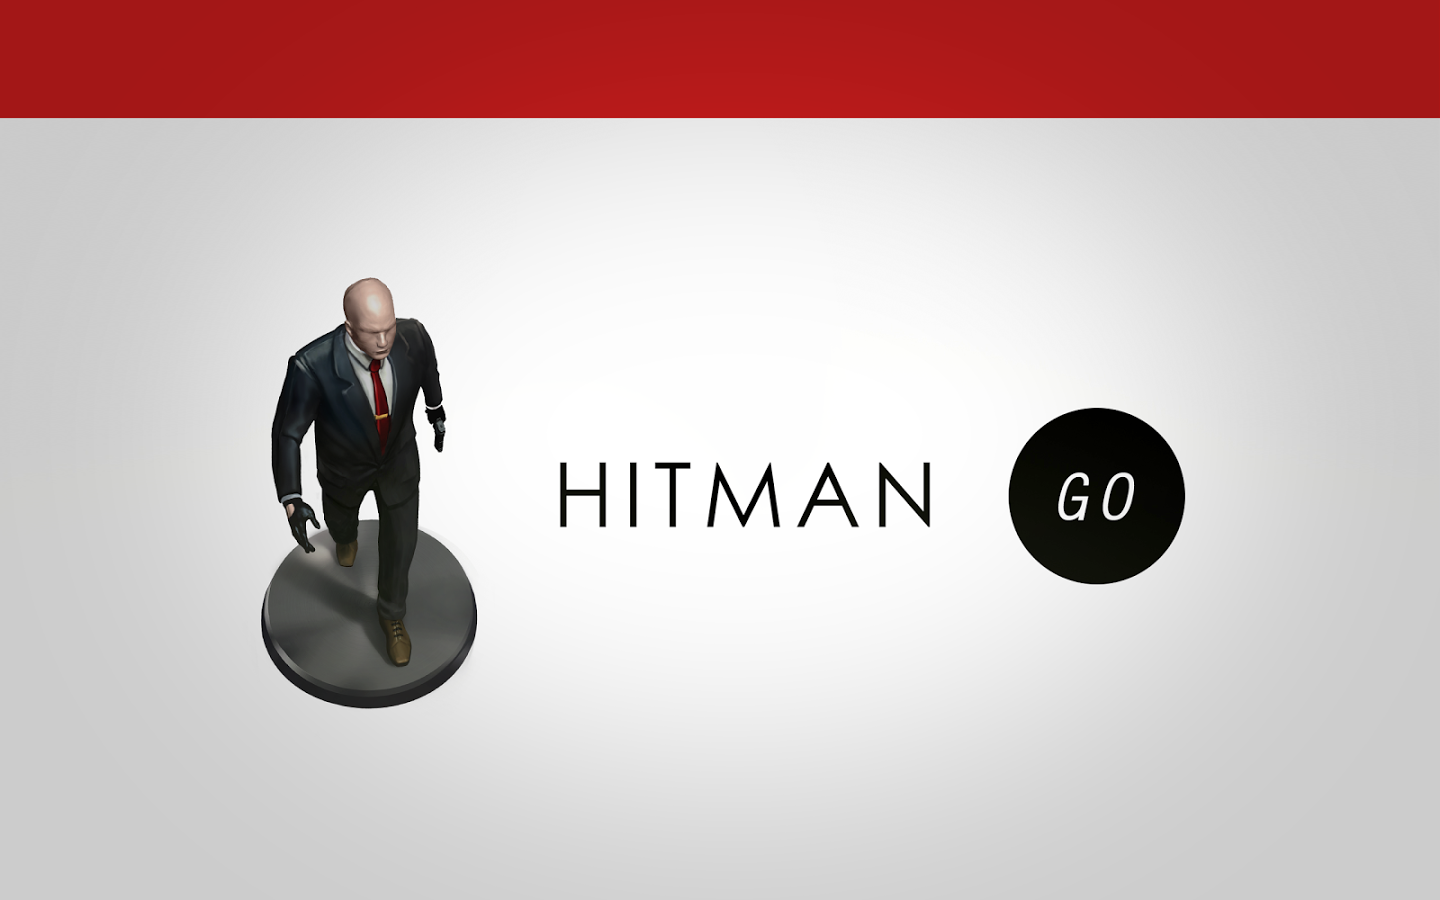 Hit-man Go Square Enix